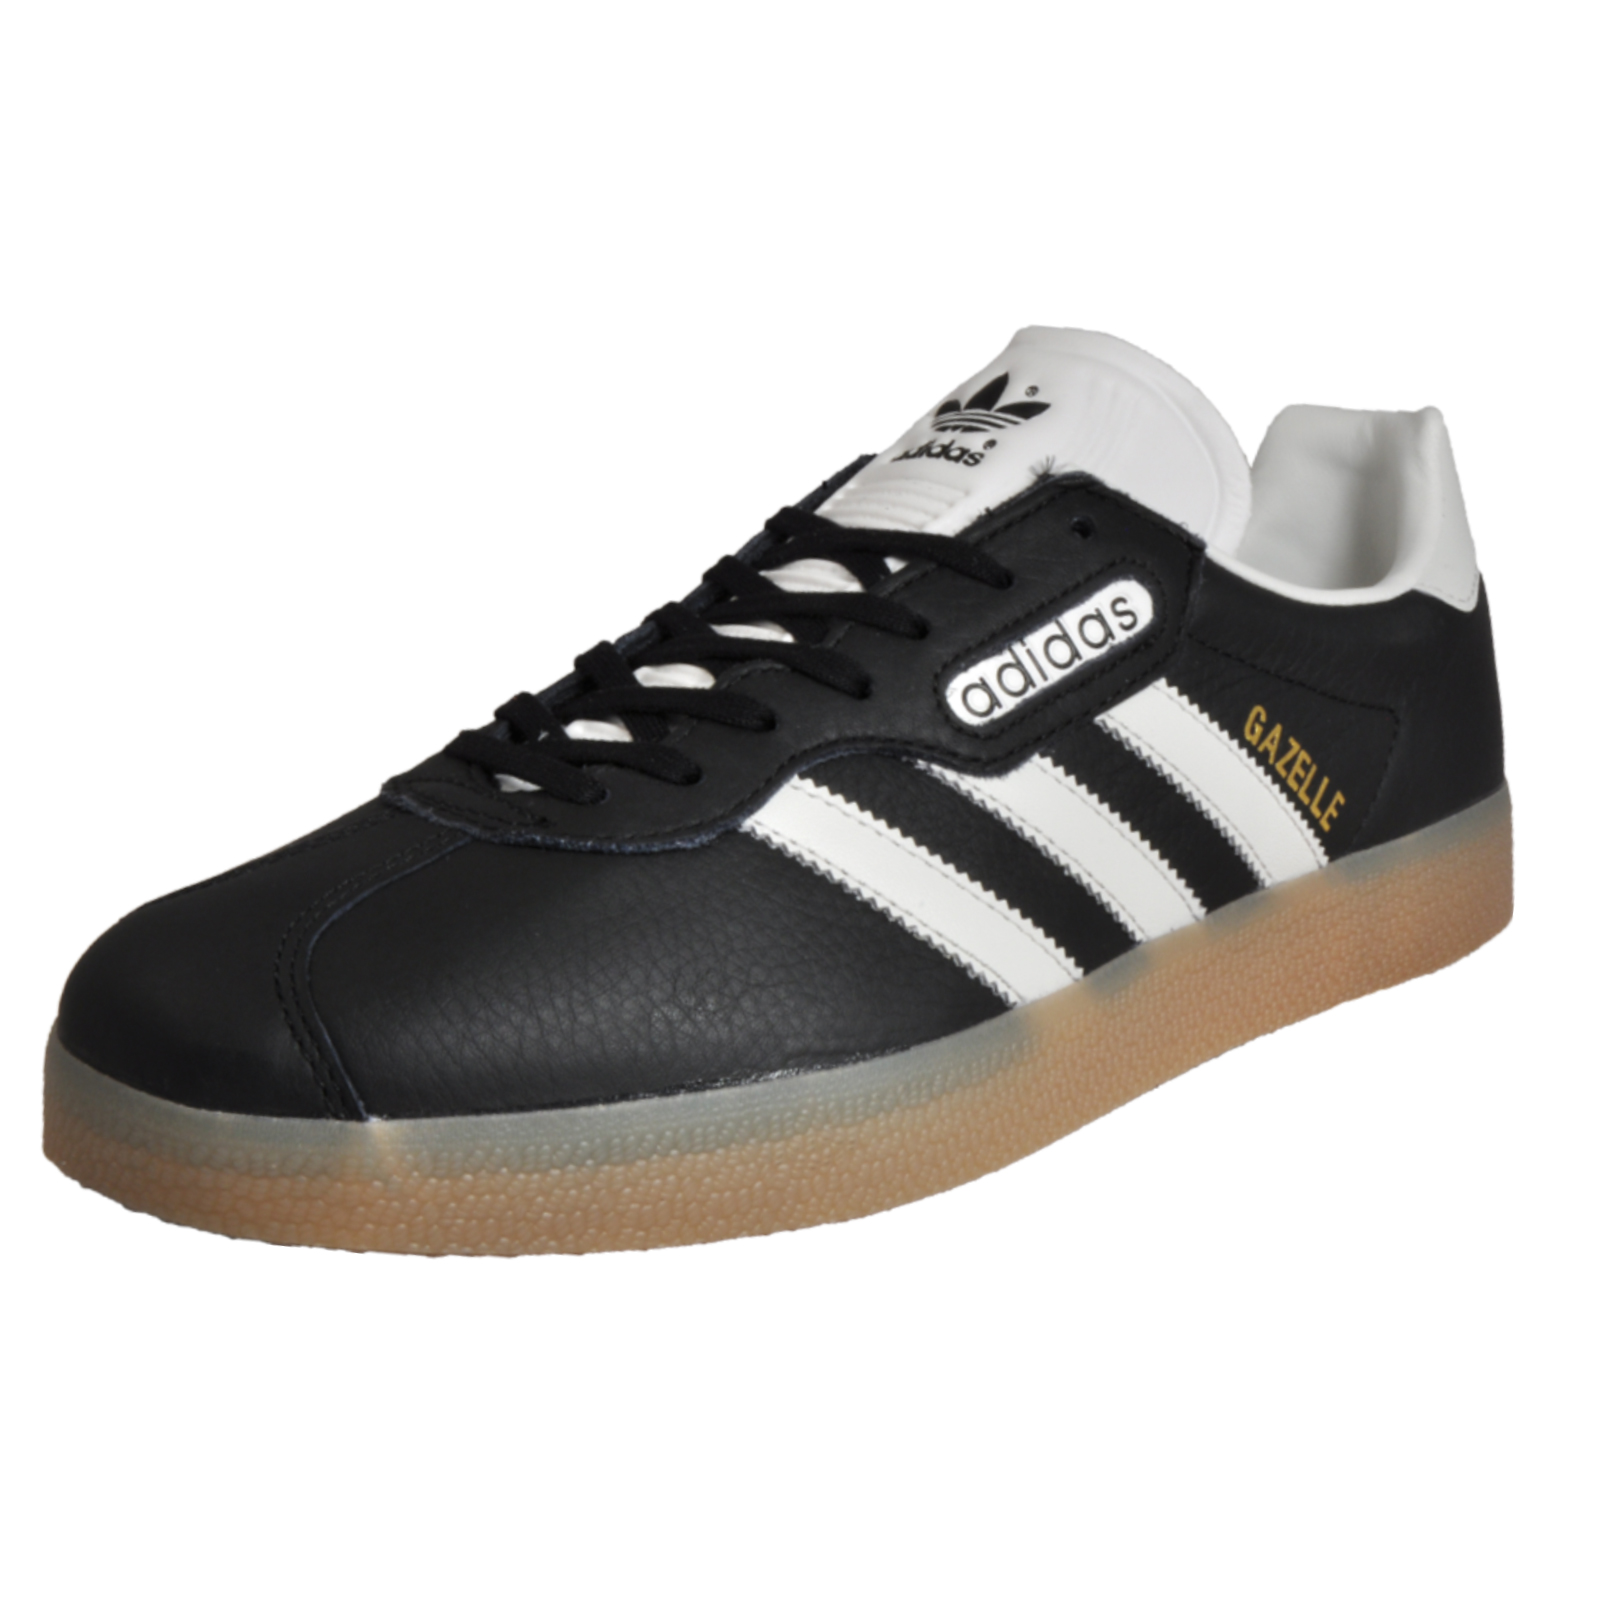 new styles b923f f8171 Details about Adidas Originals Gazelle Mens Leather Vintage Classic Casual  Retro Trainers Blac